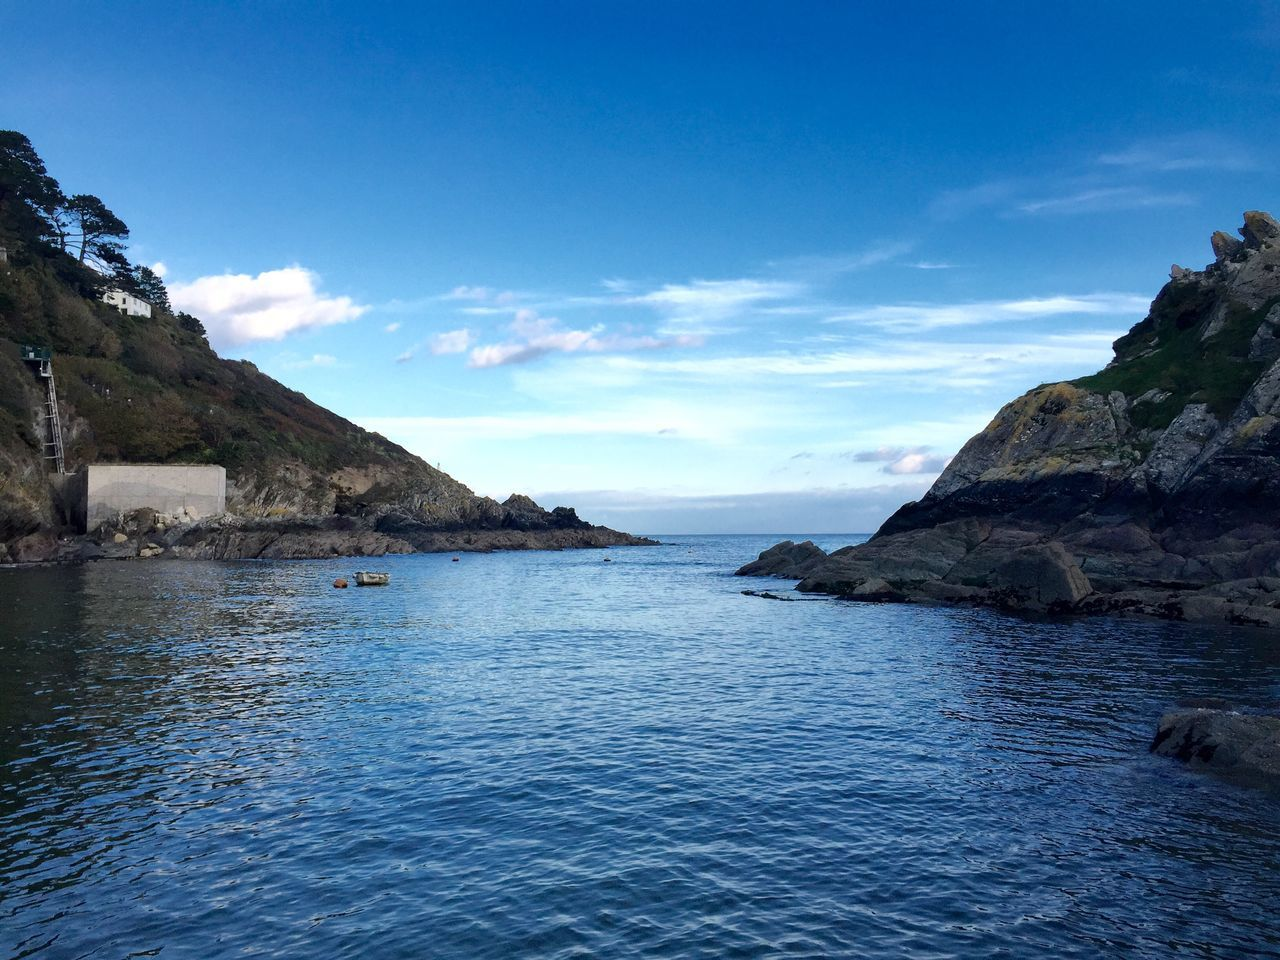 Blue Sky Blue Sea Idyllic Cornish Coast Cornish Village Harbour Cliffs Seaside October2015 Gazing Out To Sea